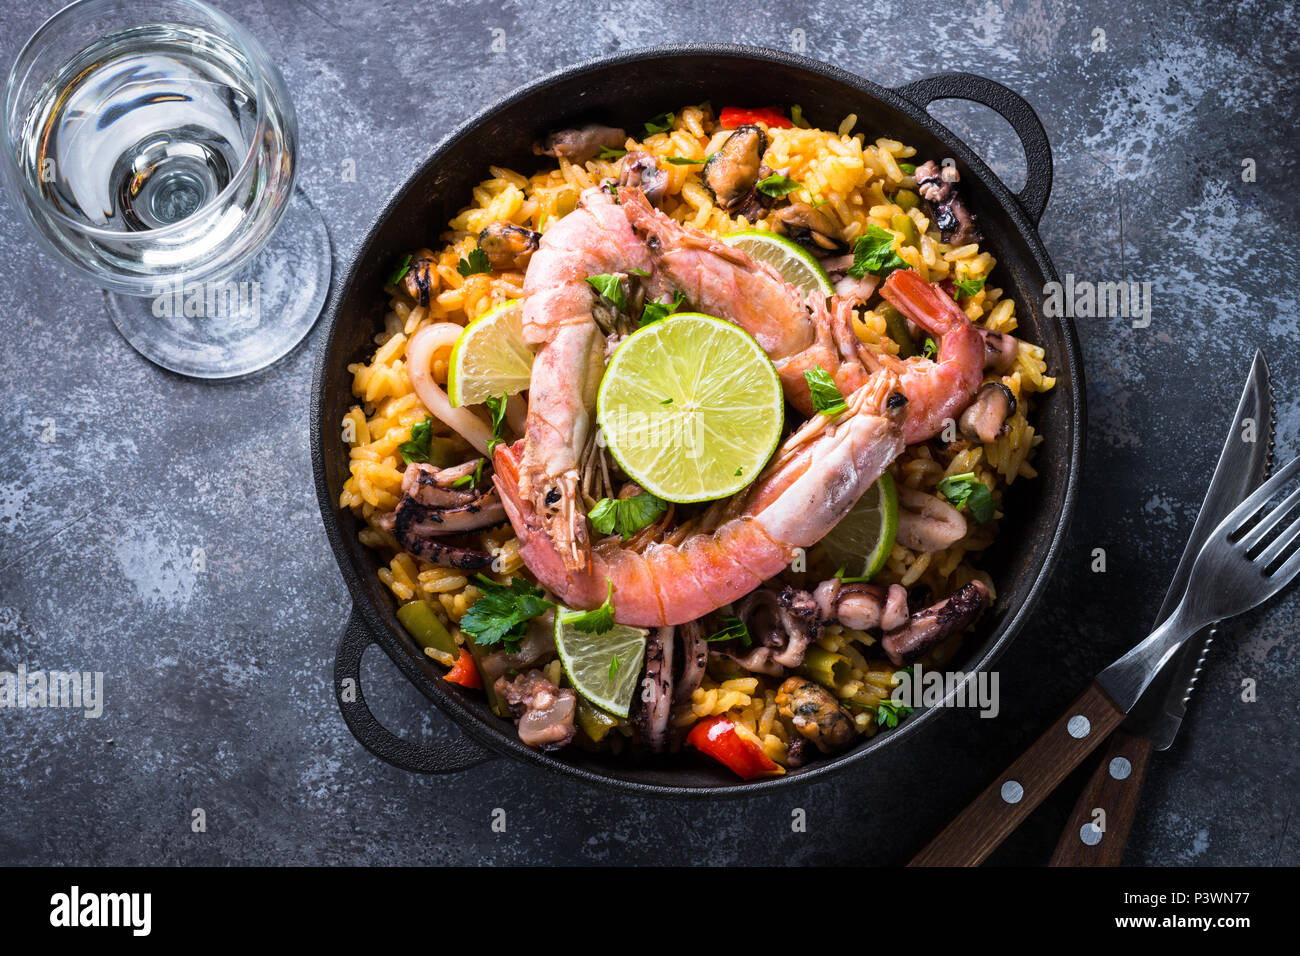 Seafood paella. Traditional spanish dish, european cuisine. Top view on dark stone table. Stock Photo